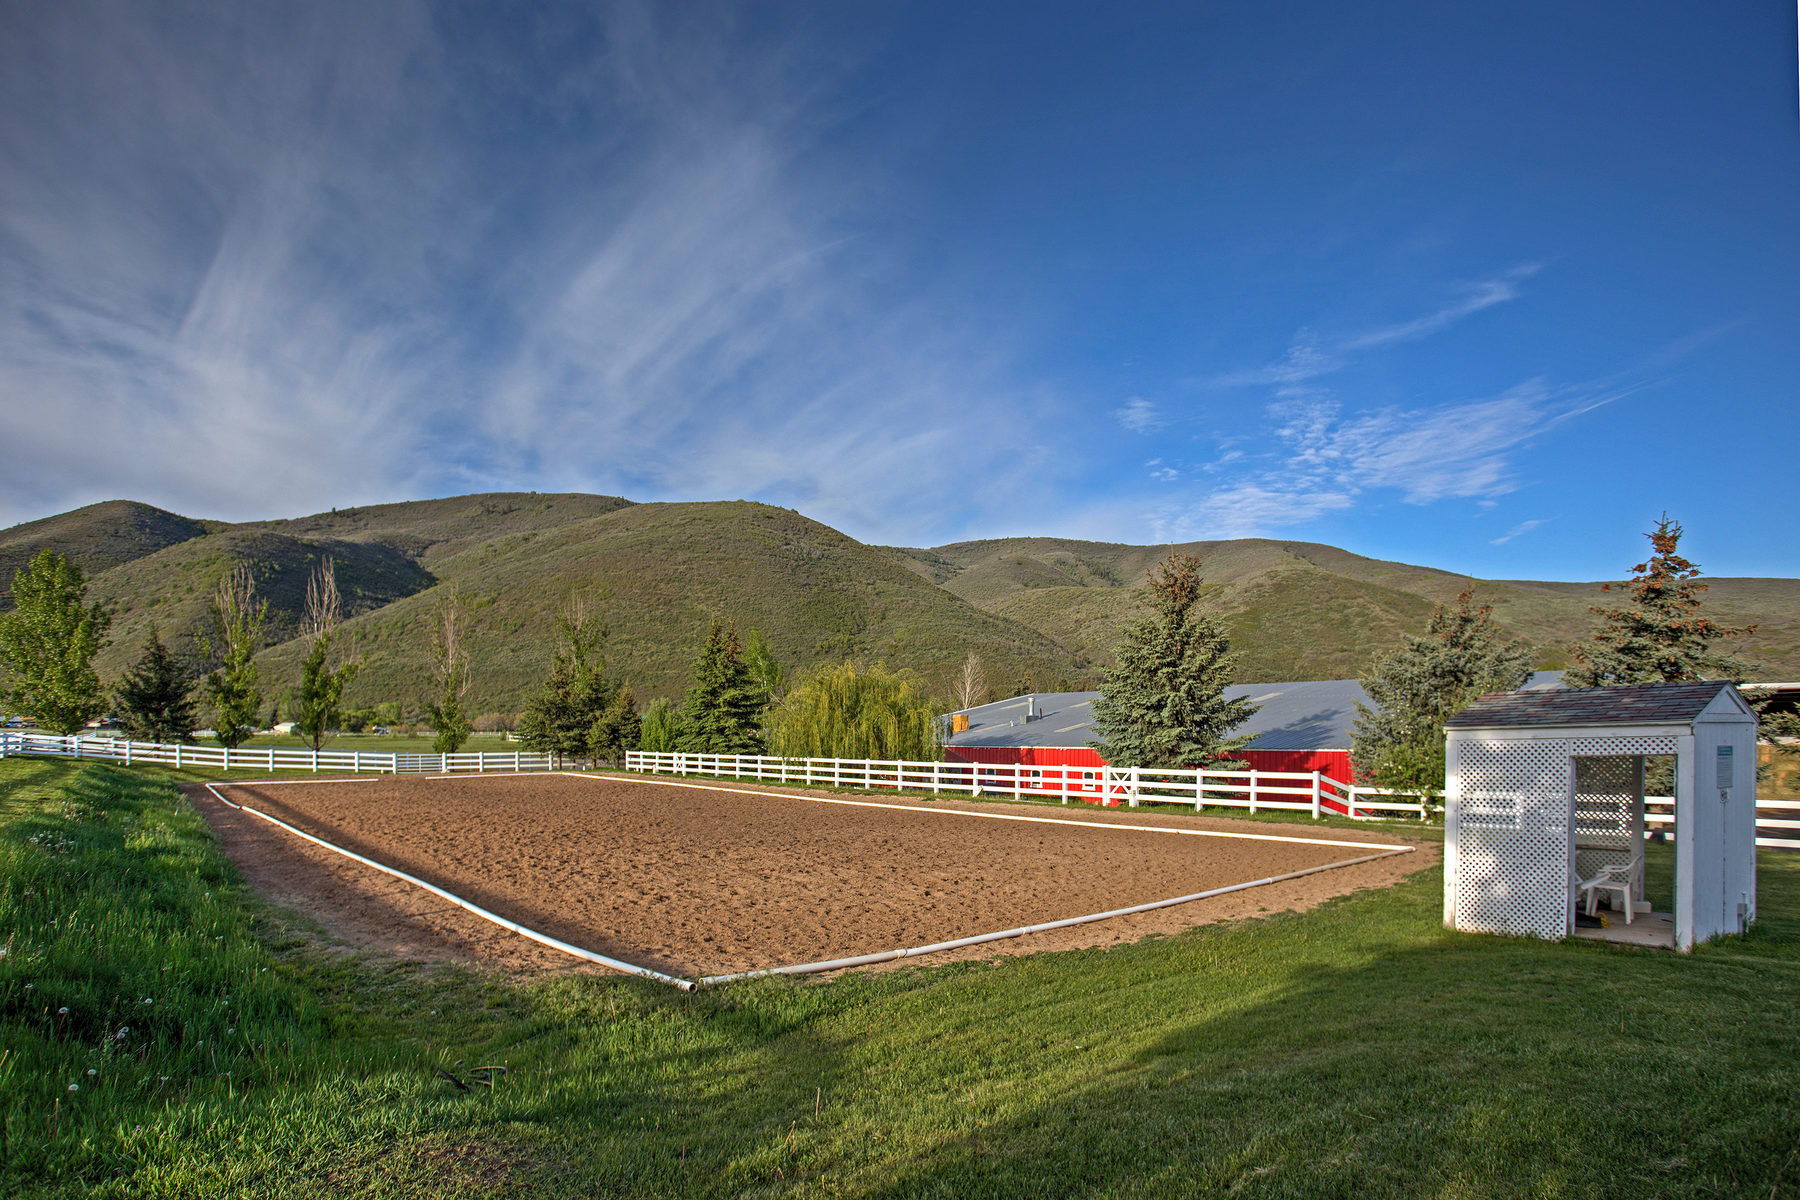 Ferme / Ranch / Plantation pour l Vente à 19 Acre Horse Training Facility 4033 S Highway 40 Heber City, Utah, 84032 États-Unis